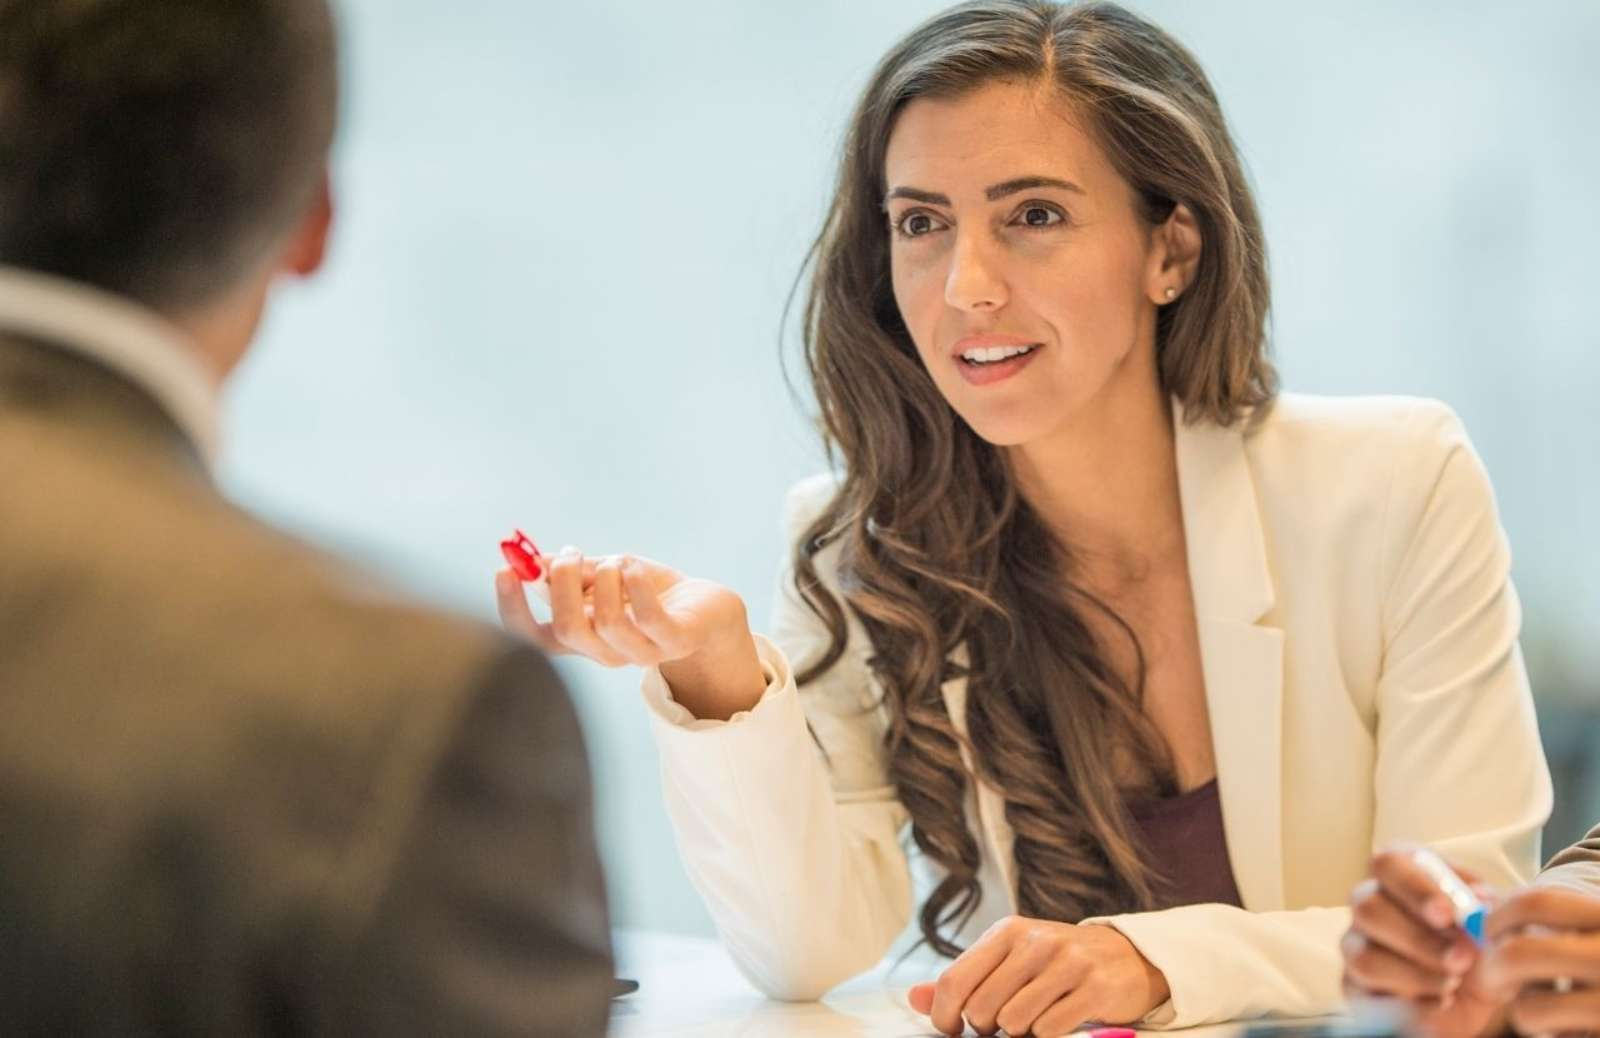 Business woman sitting at desk speaking and gesturing to man